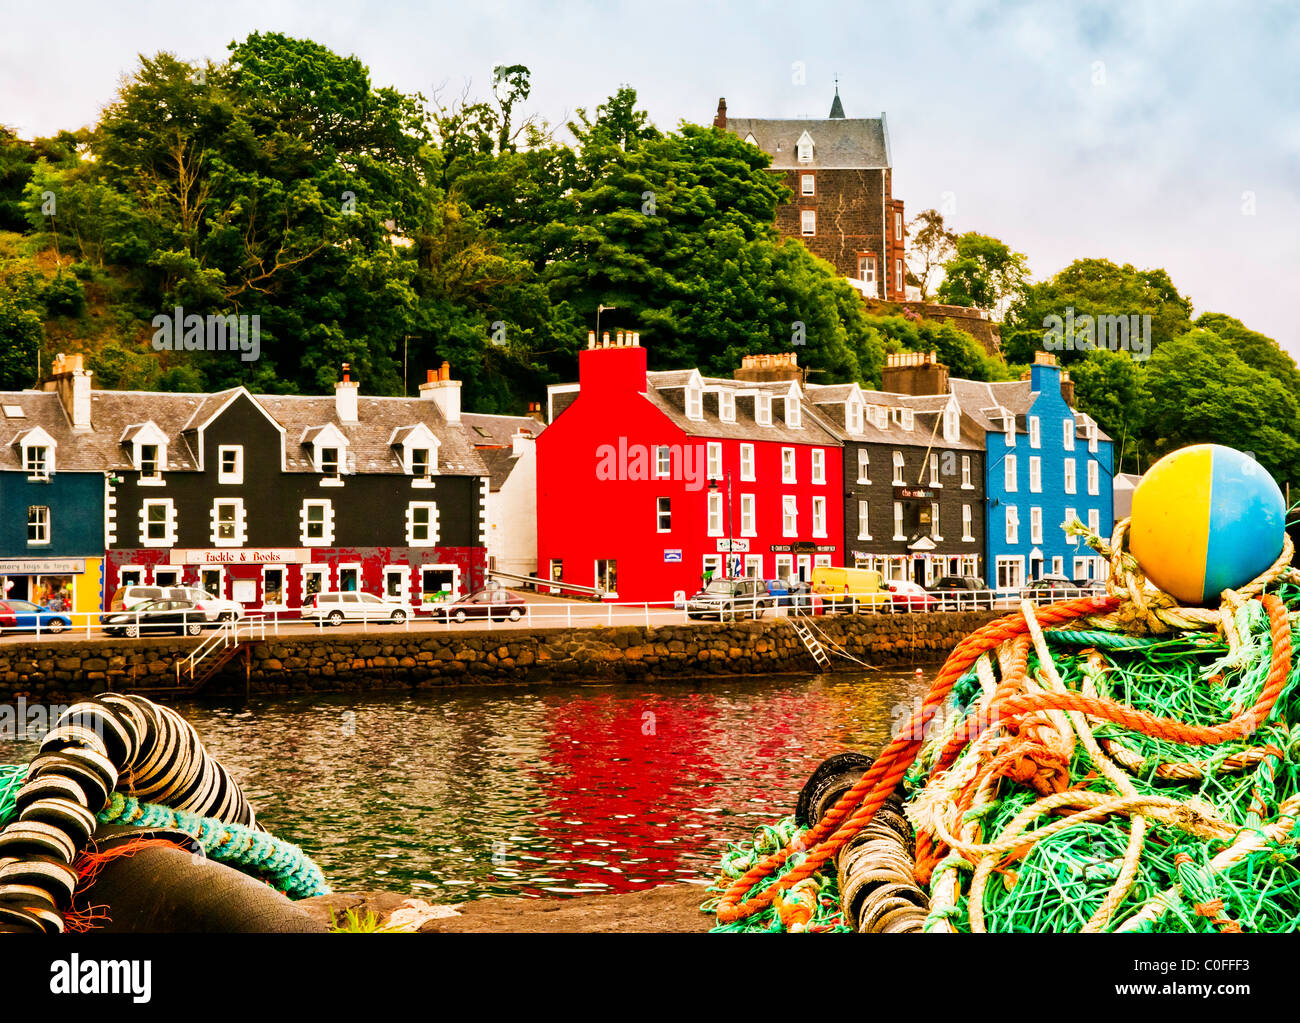 Tobermory, Isle of Mull, Waterfront at Harbour - Stock Image